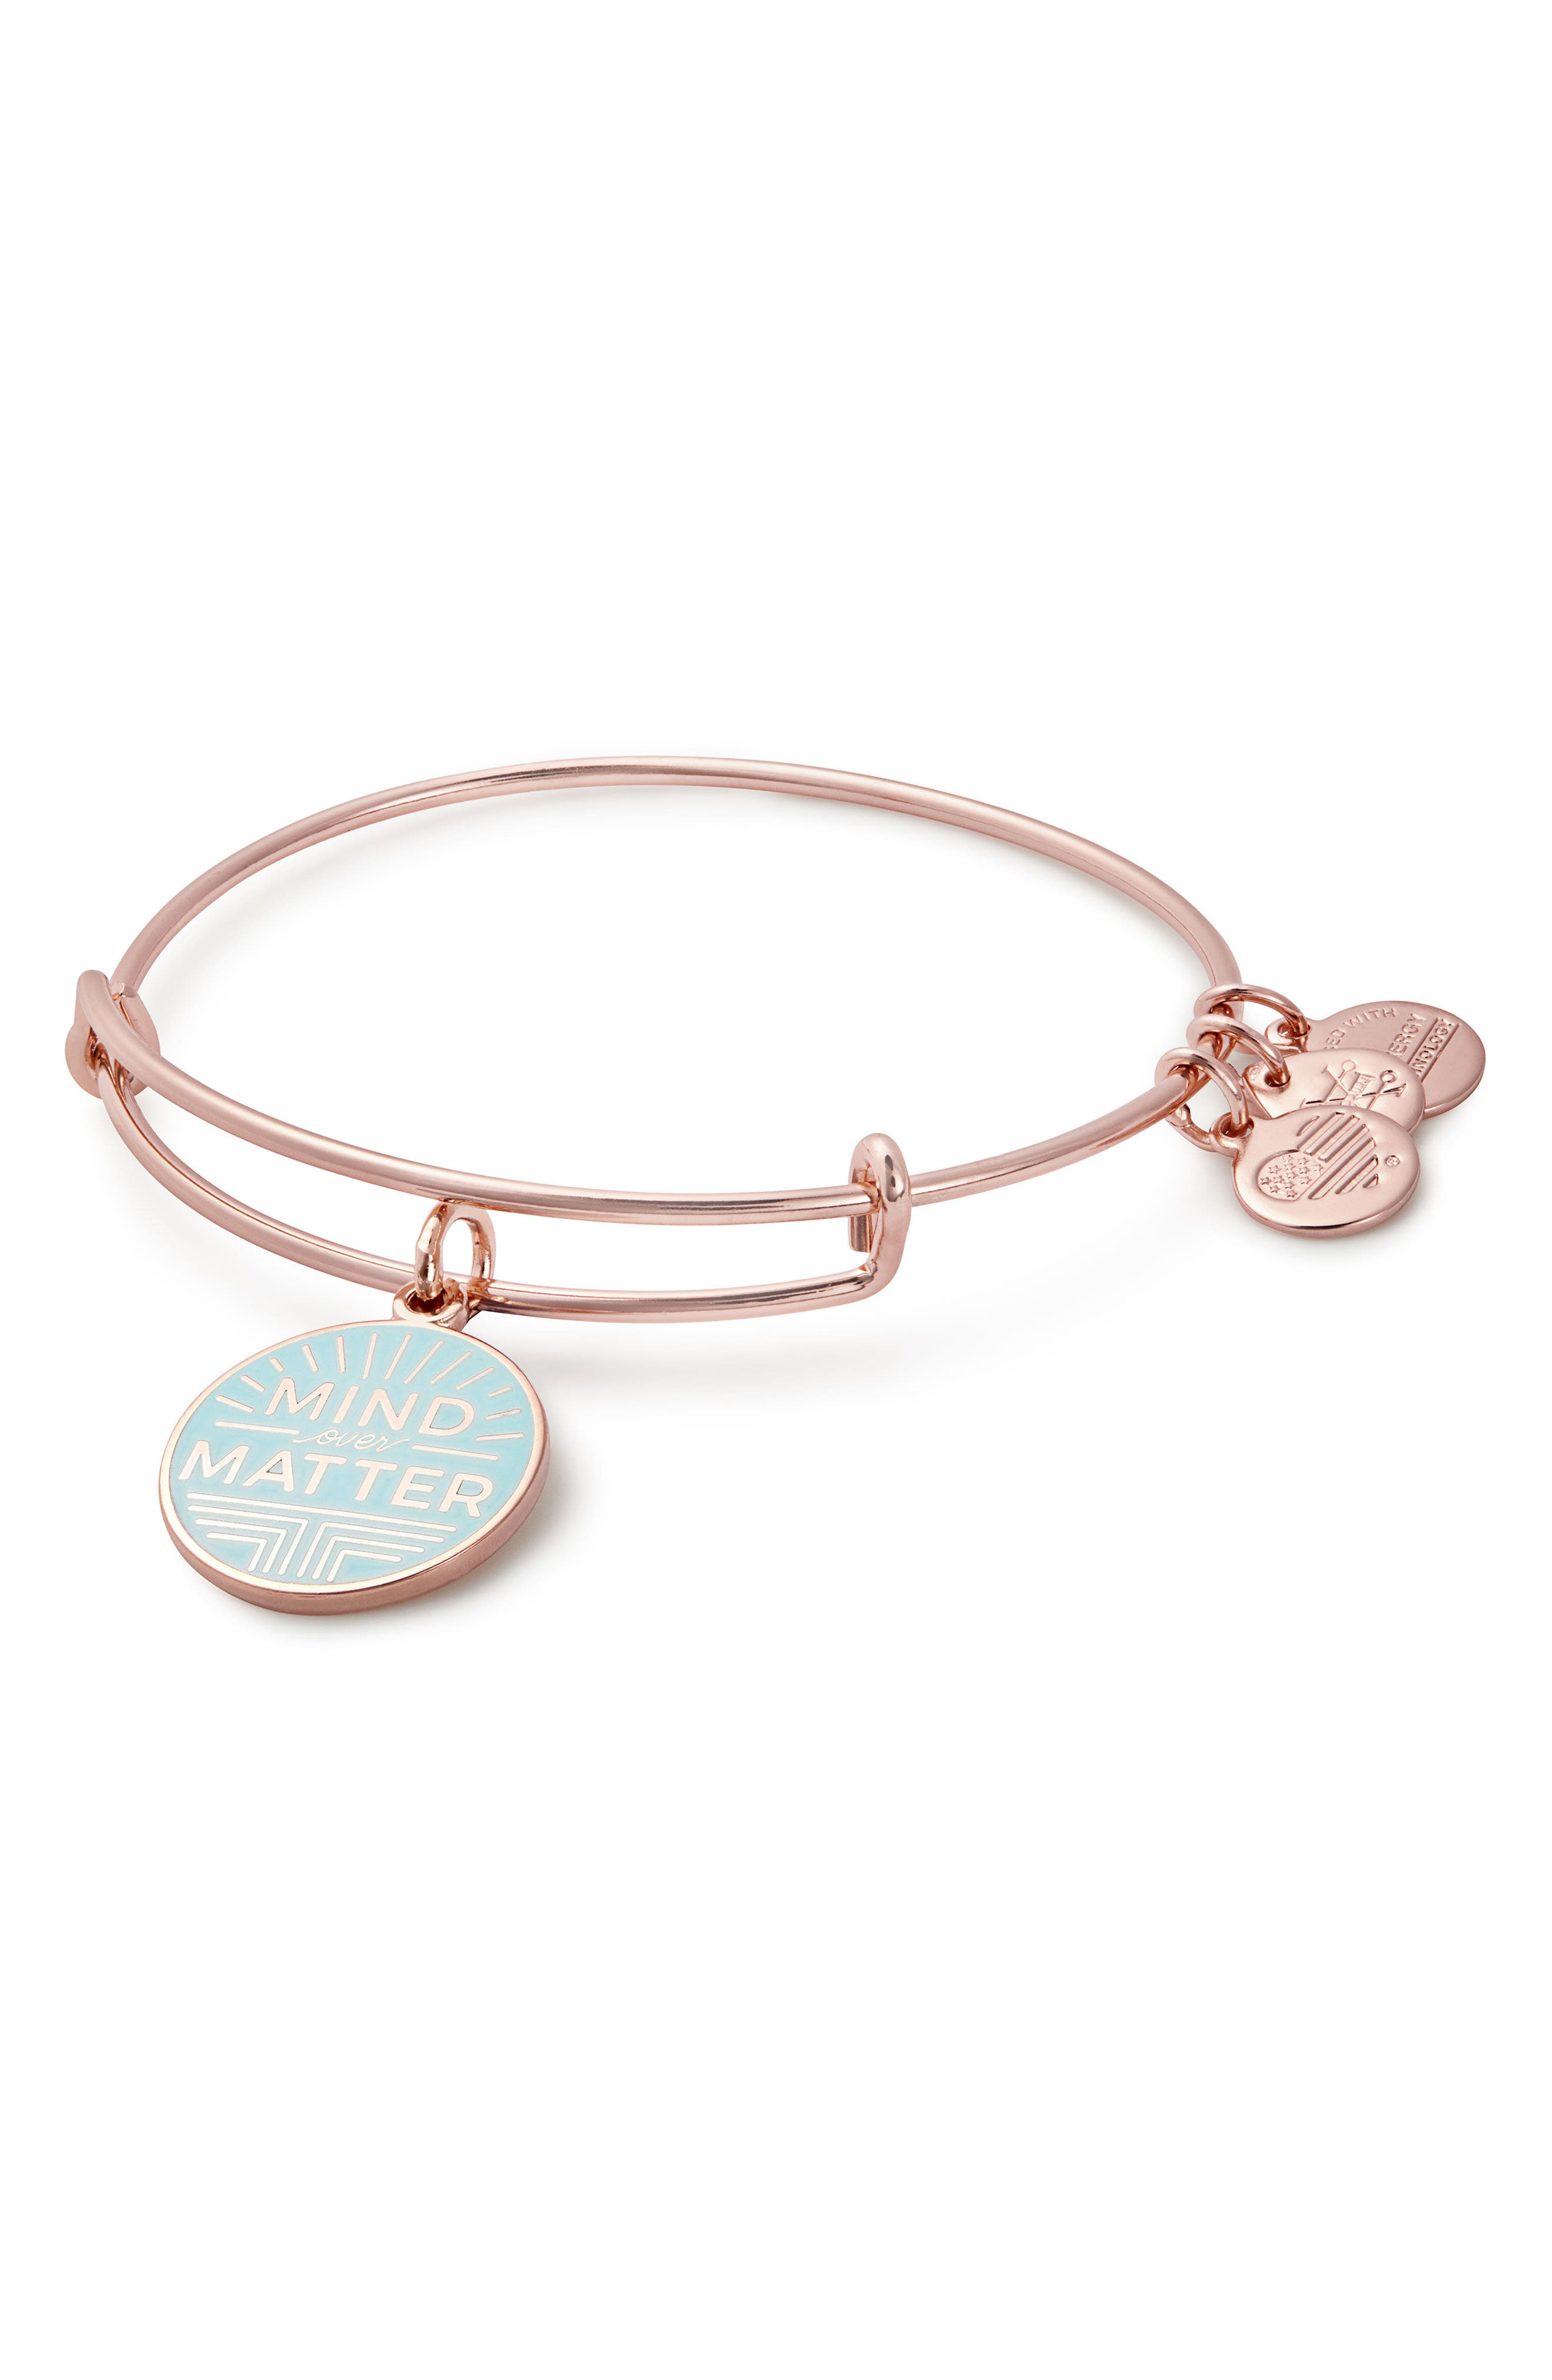 Mind over Matter Expandable Charm Bangle,                             Main thumbnail 1, color,                             650